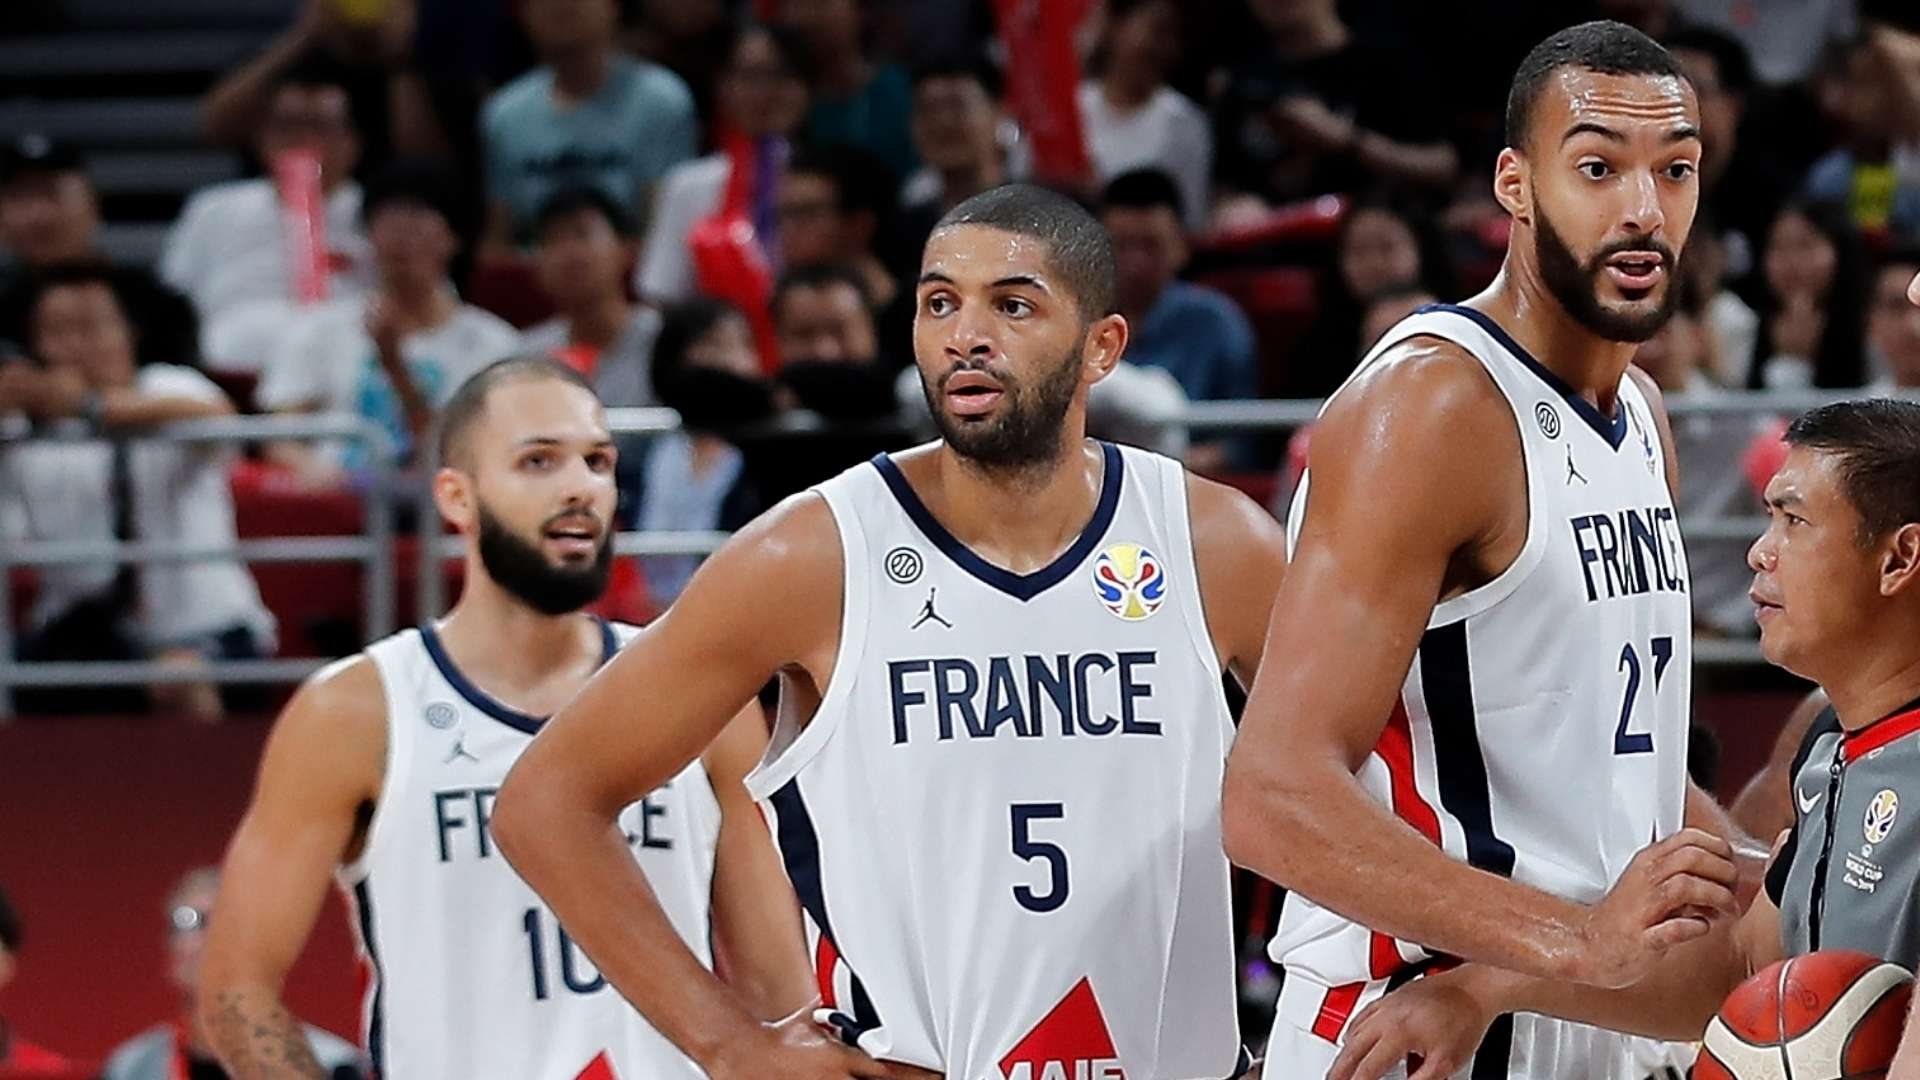 Men's Basketball at Tokyo Olympics: Every team's roster, notable NBA players,  groups, schedule and history | NBA.com Canada | The official site of the NBA